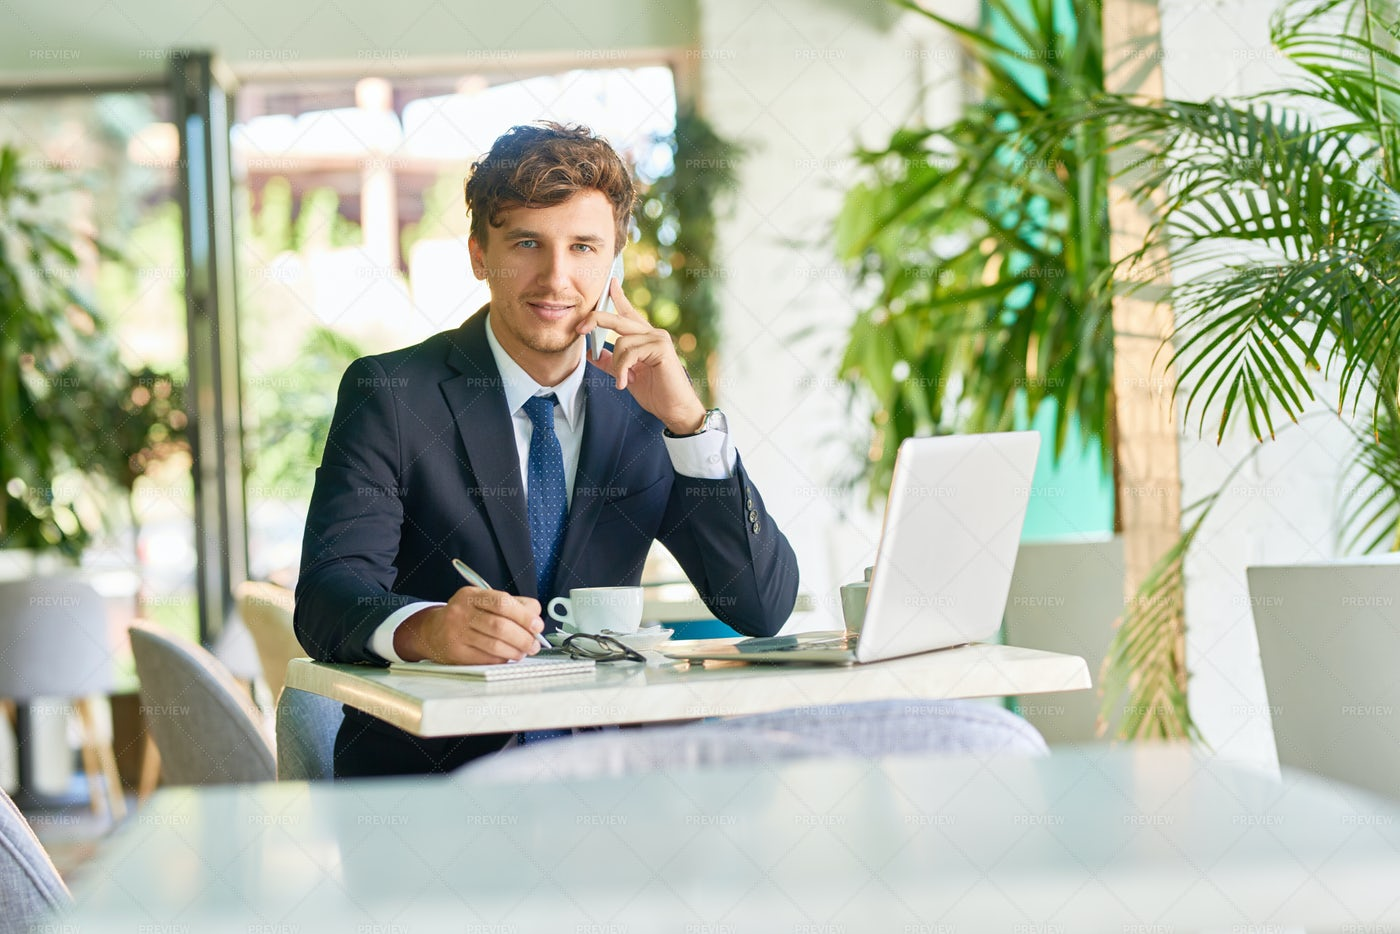 Successful Businessman Working In...: Stock Photos